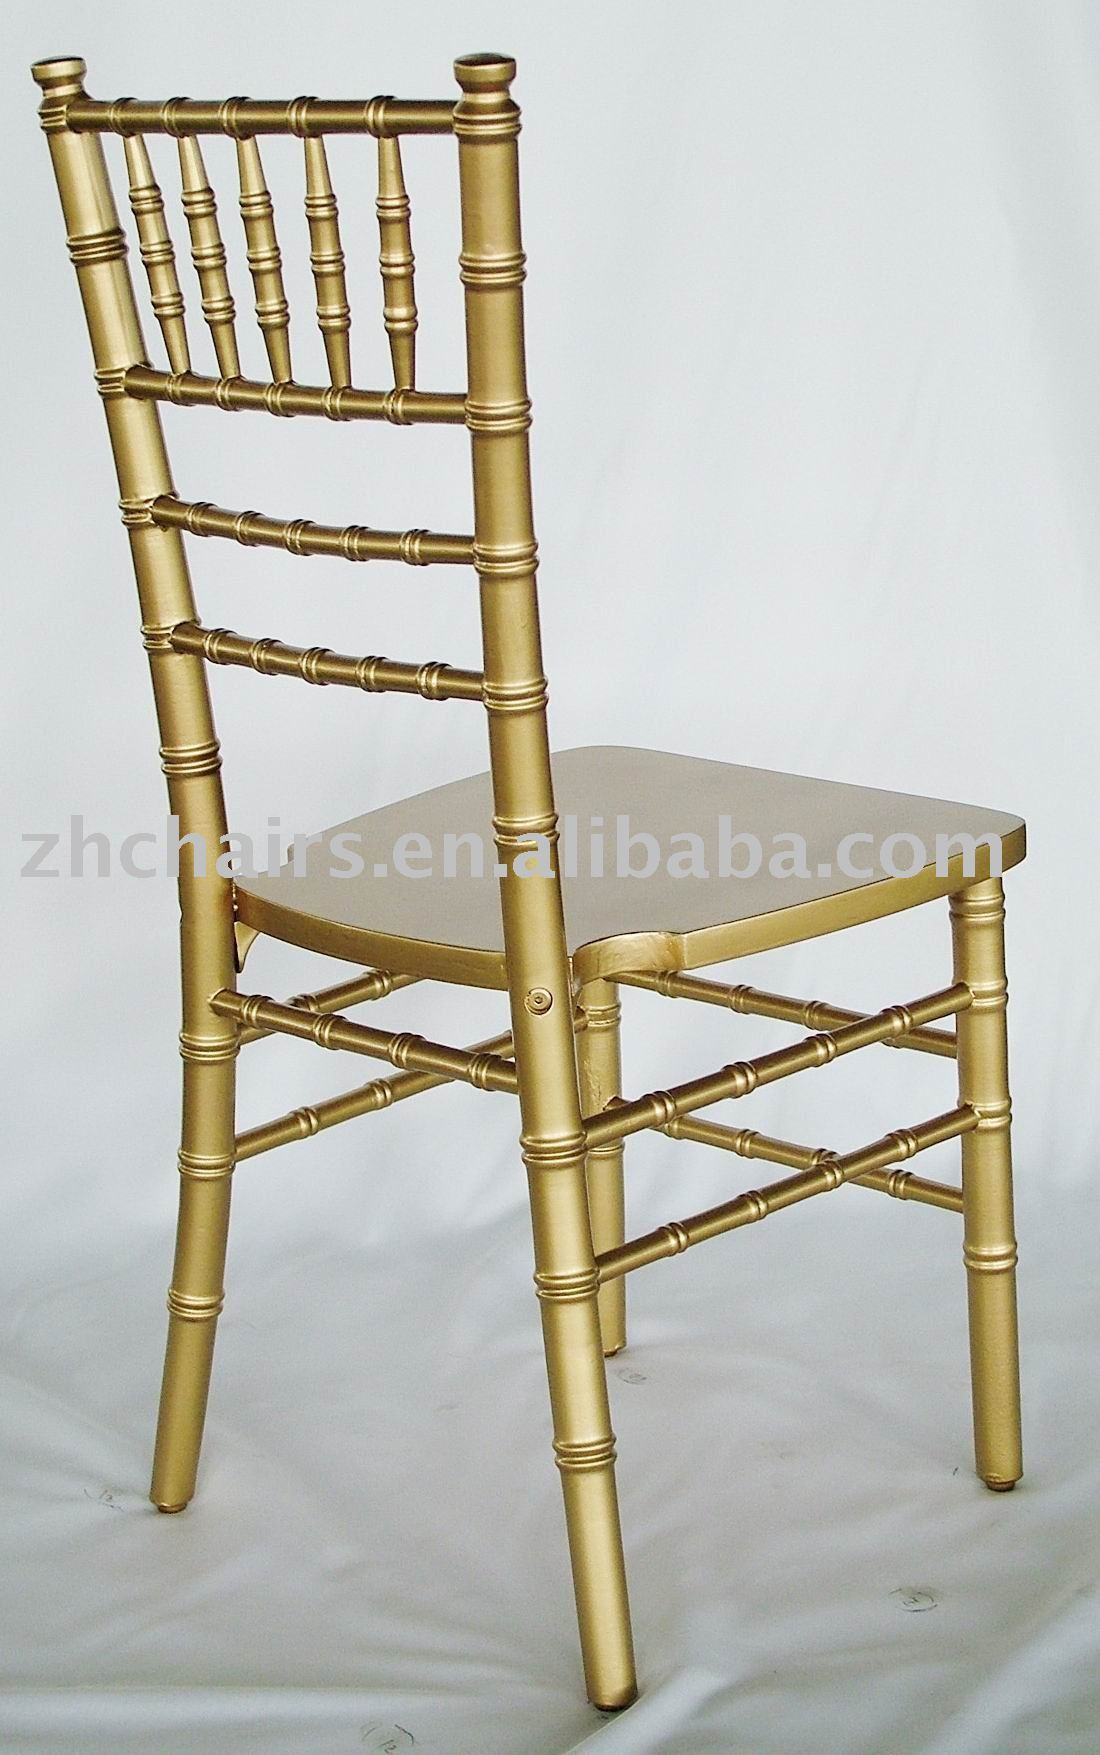 Table And Chair Rentals Prices Miami Chair Rentals Party Event Wedding Chiavari Chairs